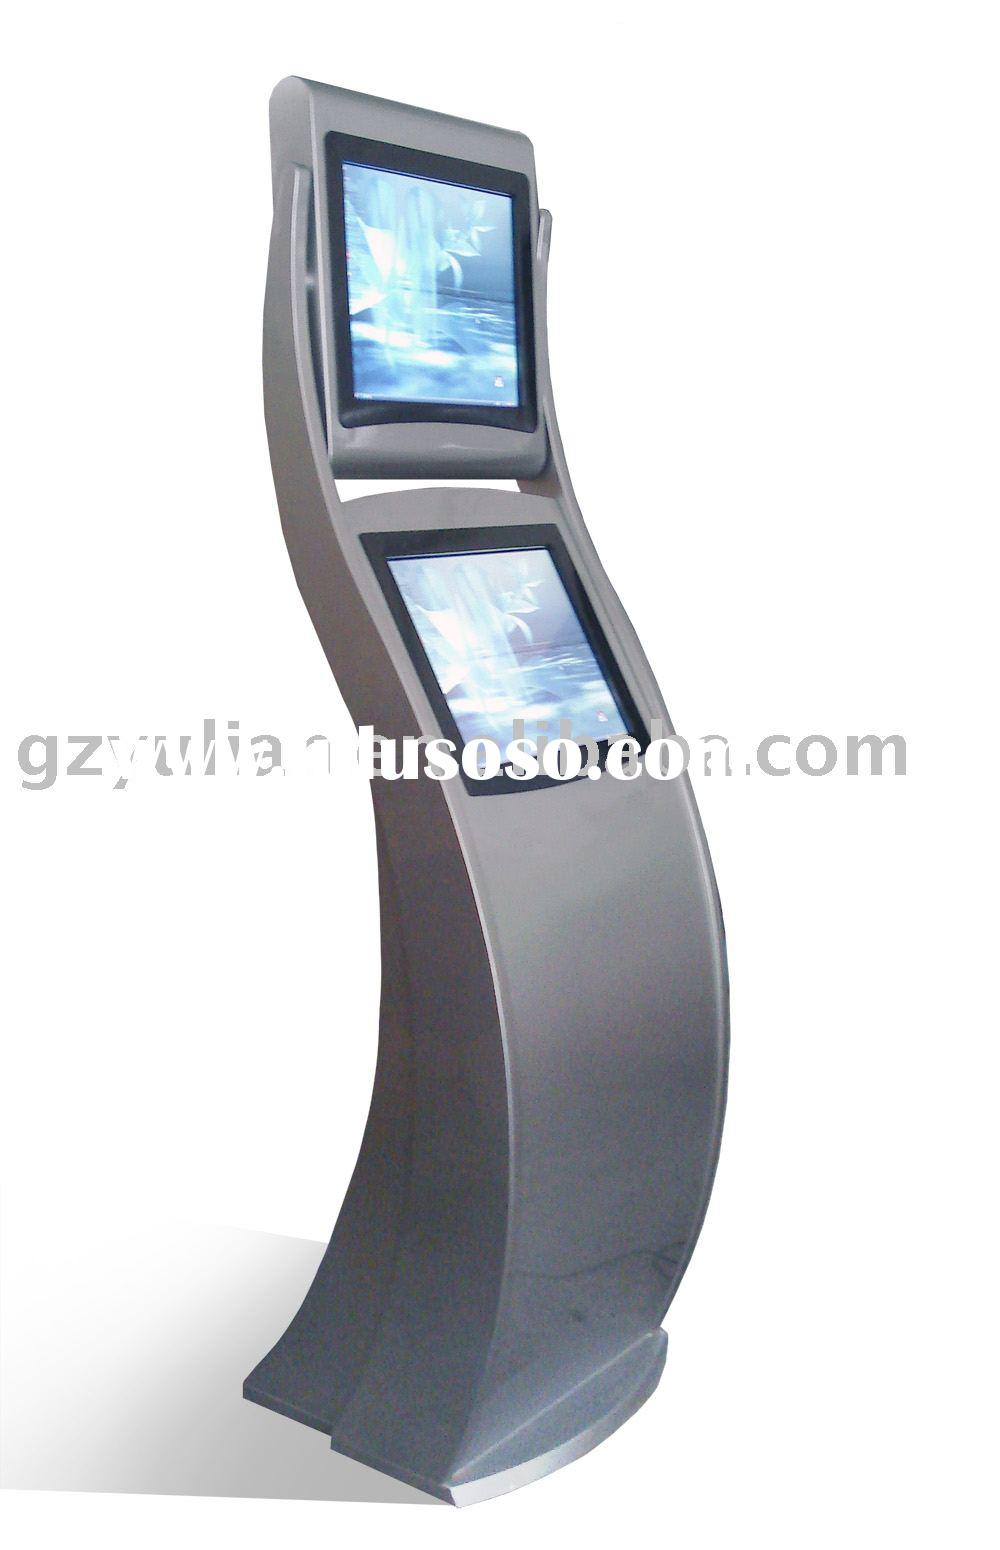 information kiosk/dual screen kiosk/ automation machine/ ticket printer/Big size touch screen displa